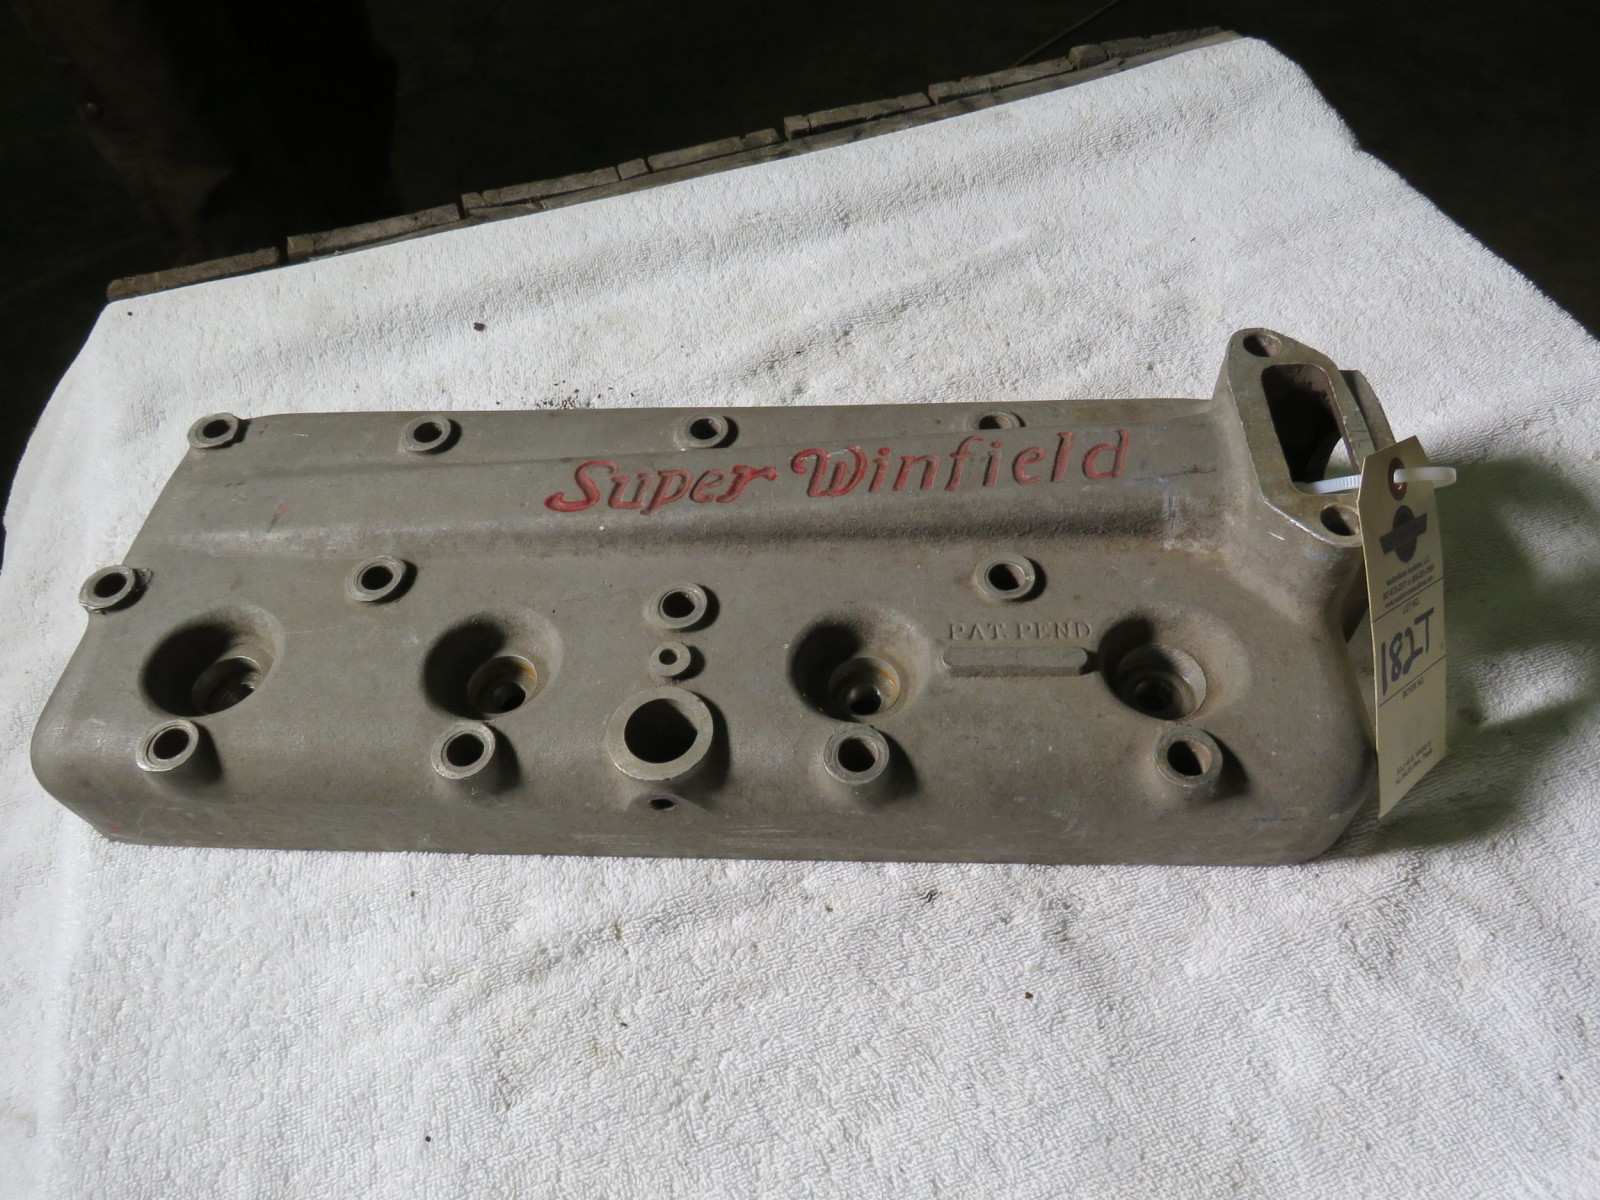 Rare Super Winfield 4 cylinder Head - Image 1